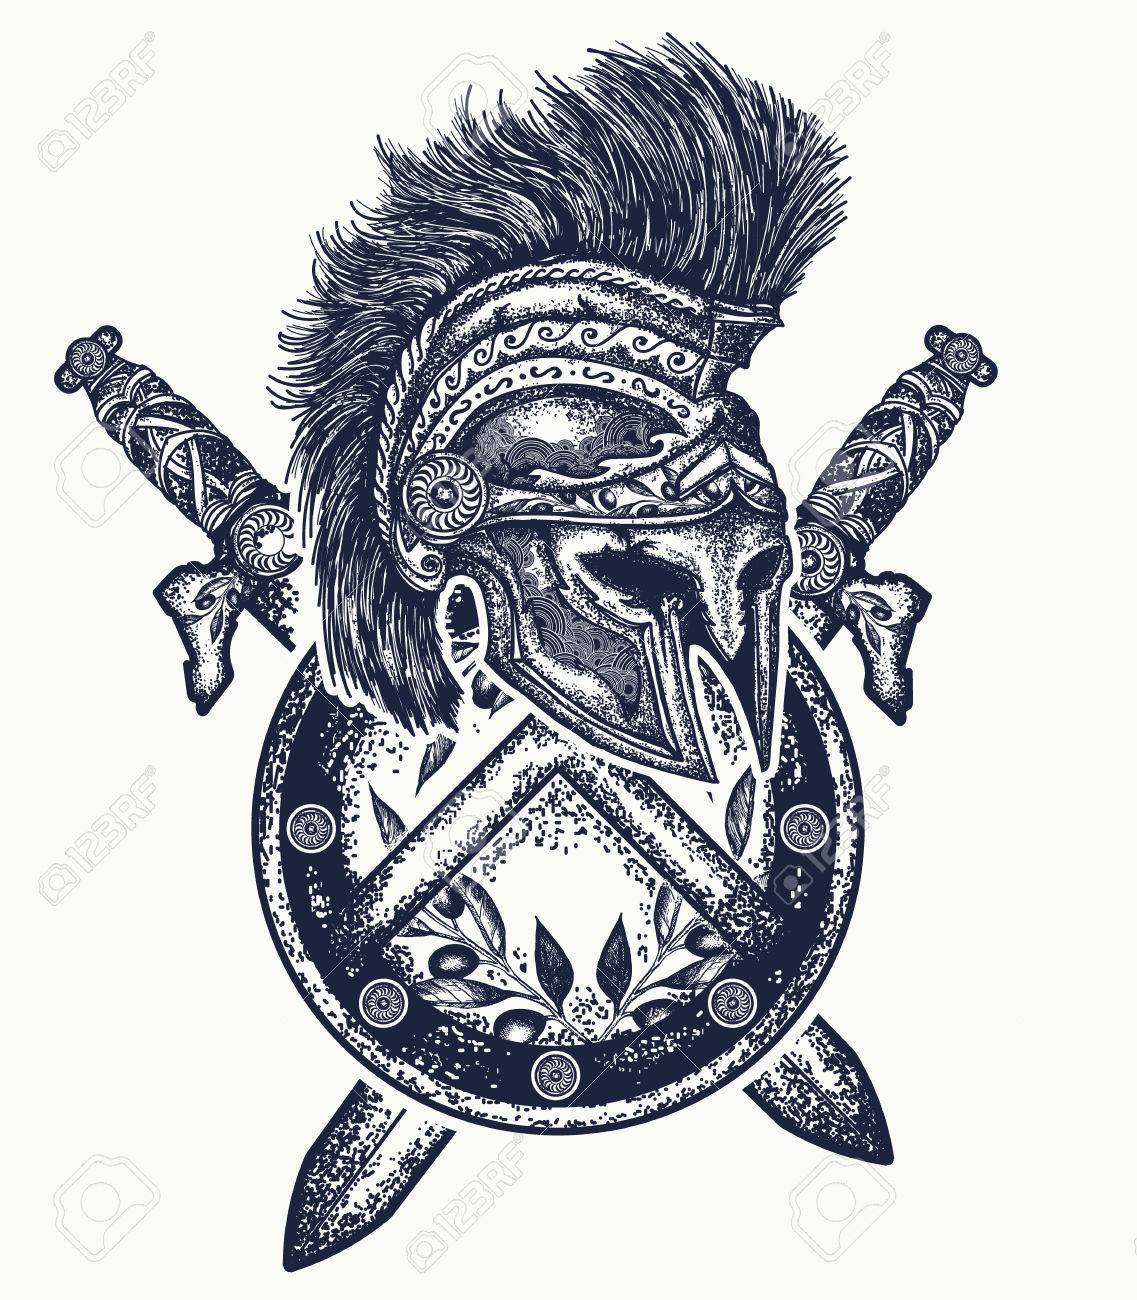 Spartan Helmet Crossed Swords And Spartan Shield Symbol Of Bravery